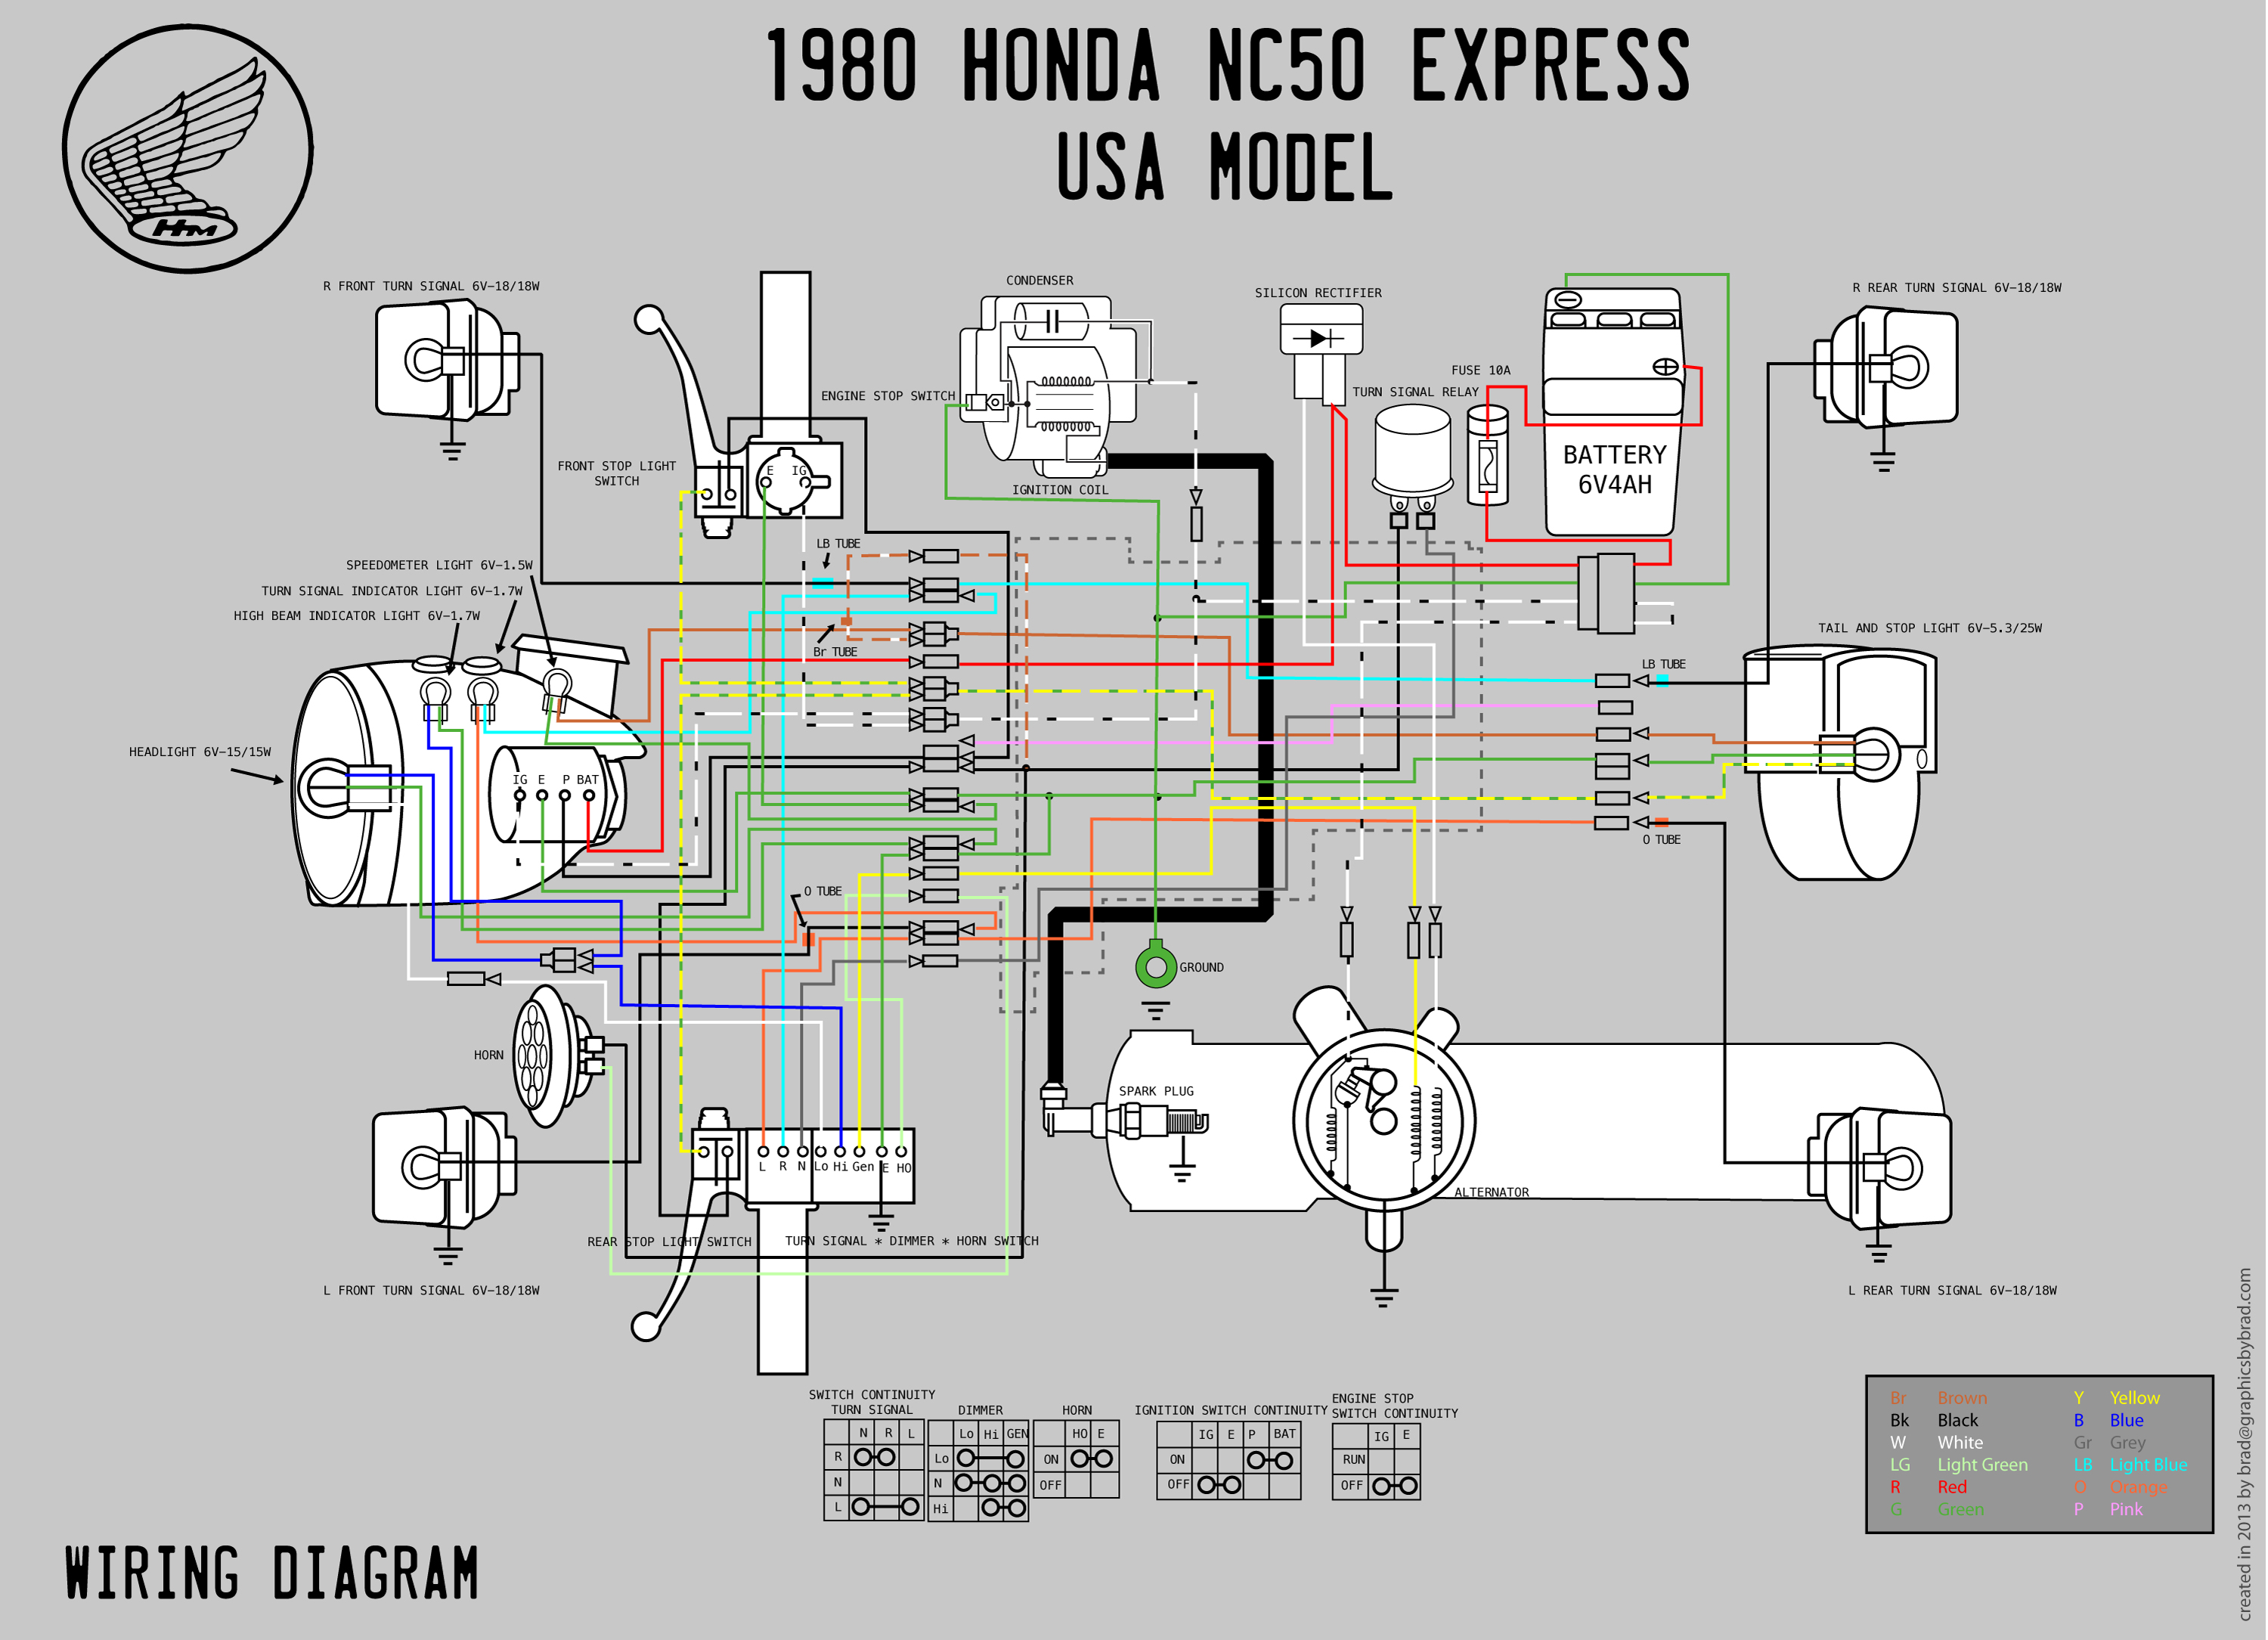 Honda Wiring Diagram - Wiring Diagram Dash on honda ct70 parts diagram, honda ct70 engine, honda ct70 cylinder head, honda ct70 flywheel, honda ct70 specifications, trail 90 wiring diagram, honda ct70 headlight, saab 9-7x wiring diagram, honda ct70 mini trail, honda ct70 fuel tank, honda ct70 air cleaner, honda ct70 exhaust, honda trail 70 carburetor diagram, honda ct70 parts catalog, honda motorcycle wiring schematics, honda ct70 turn signals, honda ct70 frame, saturn l-series wiring diagram, honda ct70 tires, honda ct70 carb diagram,